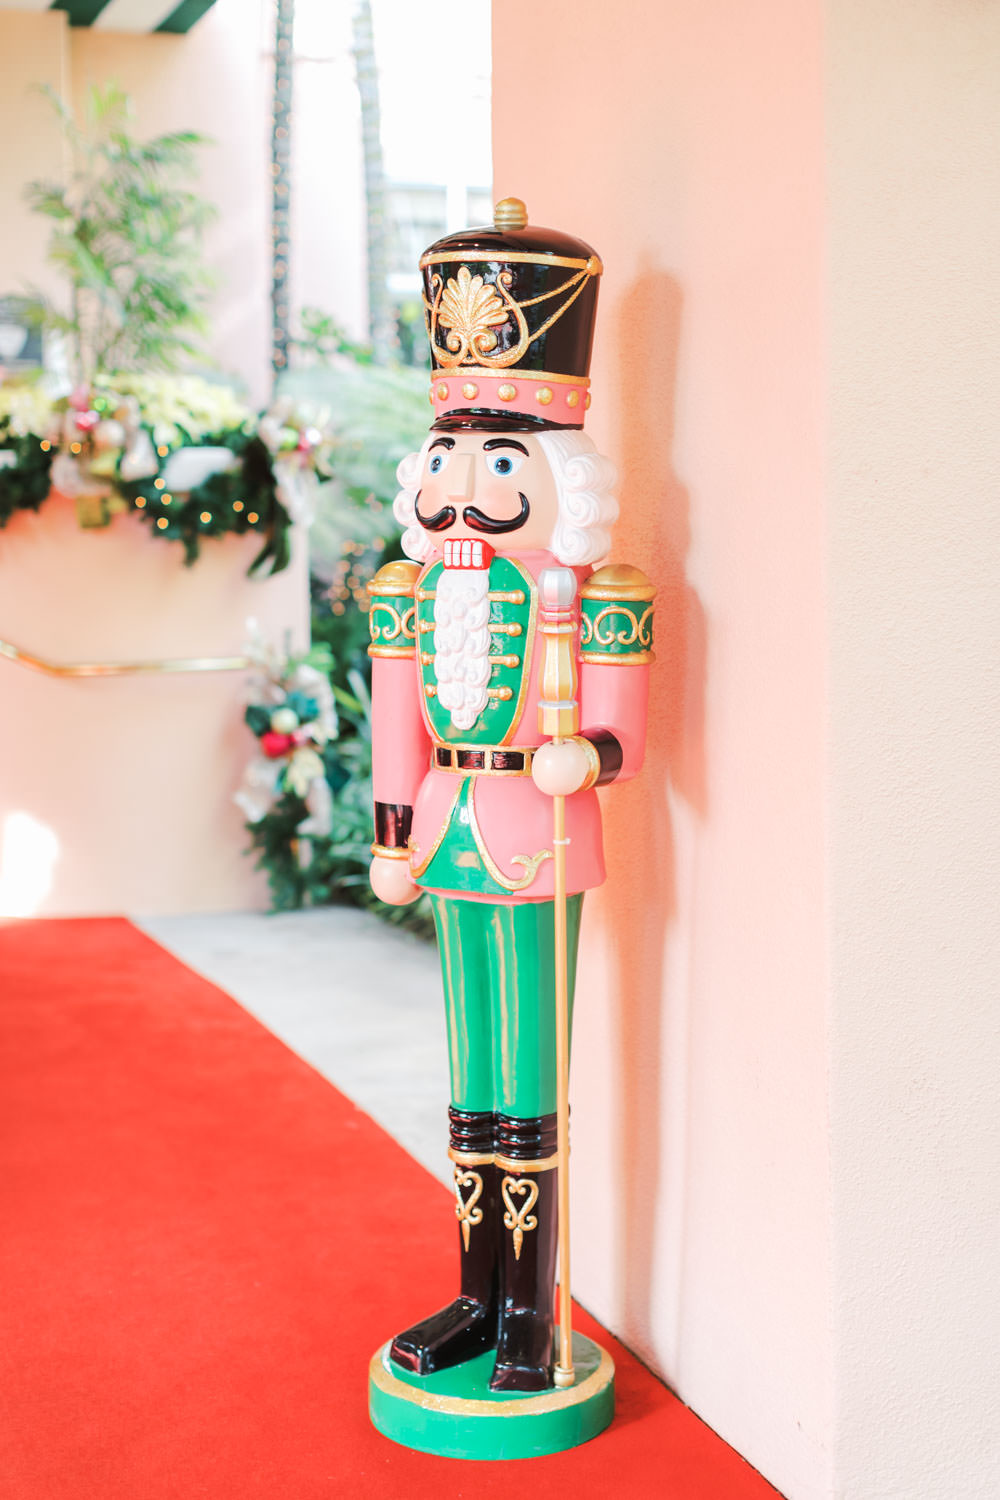 Chic Beverly Hills Hotel nutcracker statue with pink and teal in Los Angeles during Christmas decorations, Cavin Elizabeth Photography